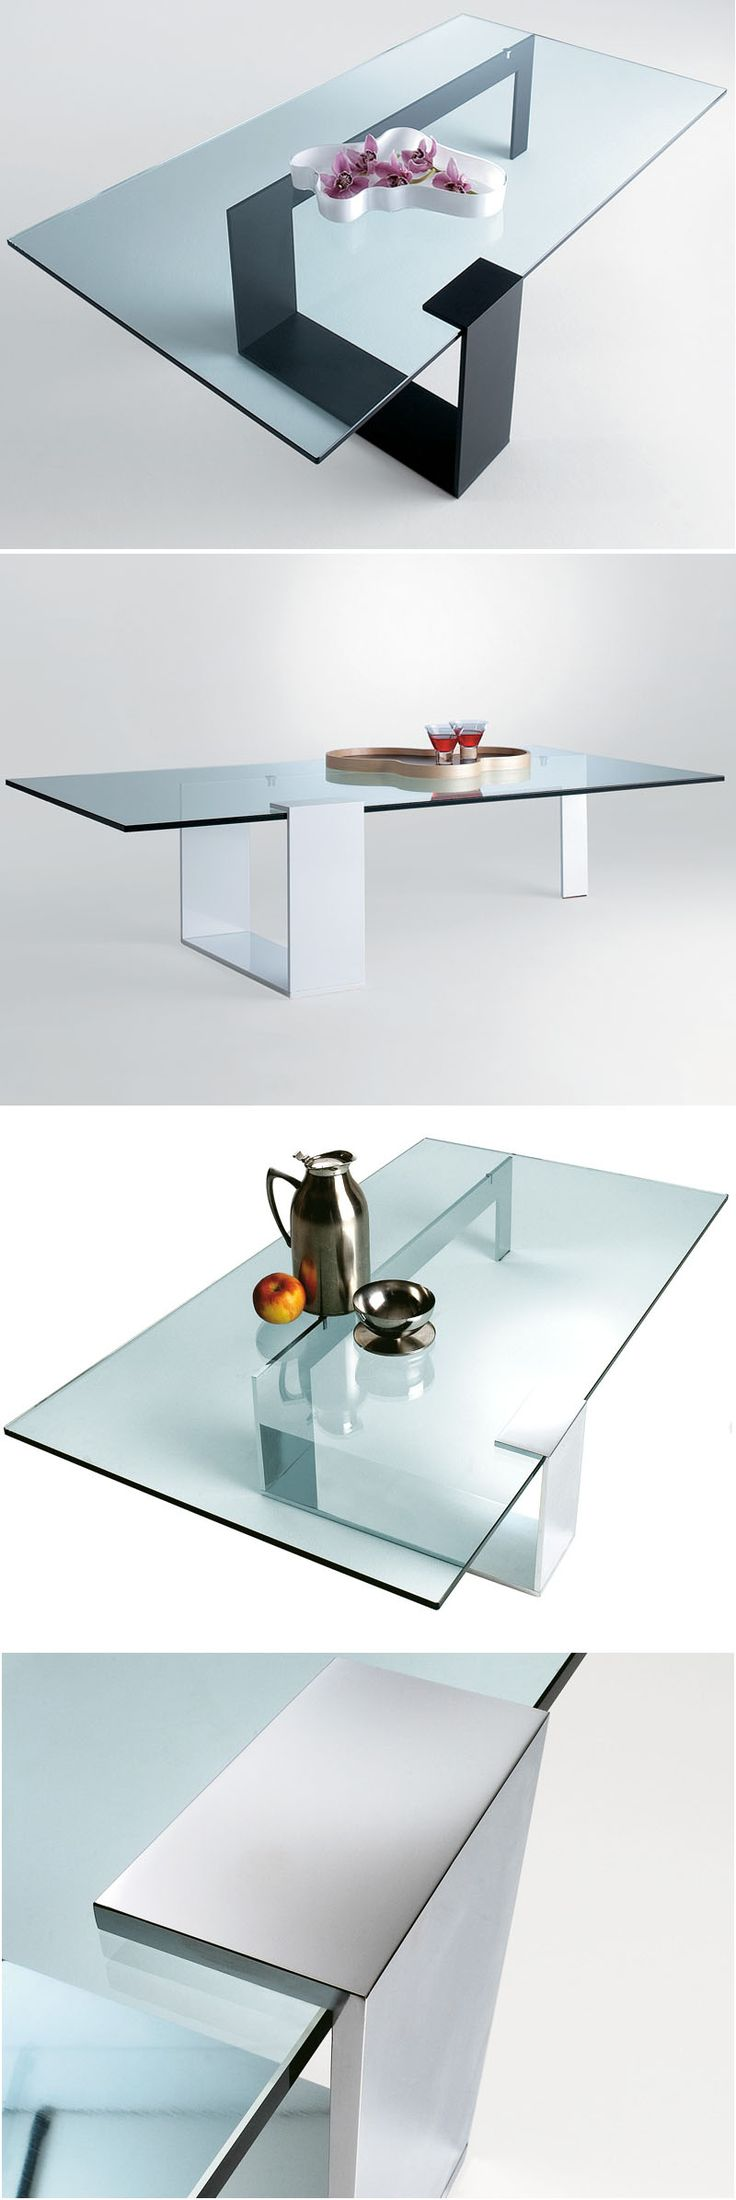 25 Best Ideas About Glass Coffee Tables On Pinterest Coffee Table Design Diy Metal Table